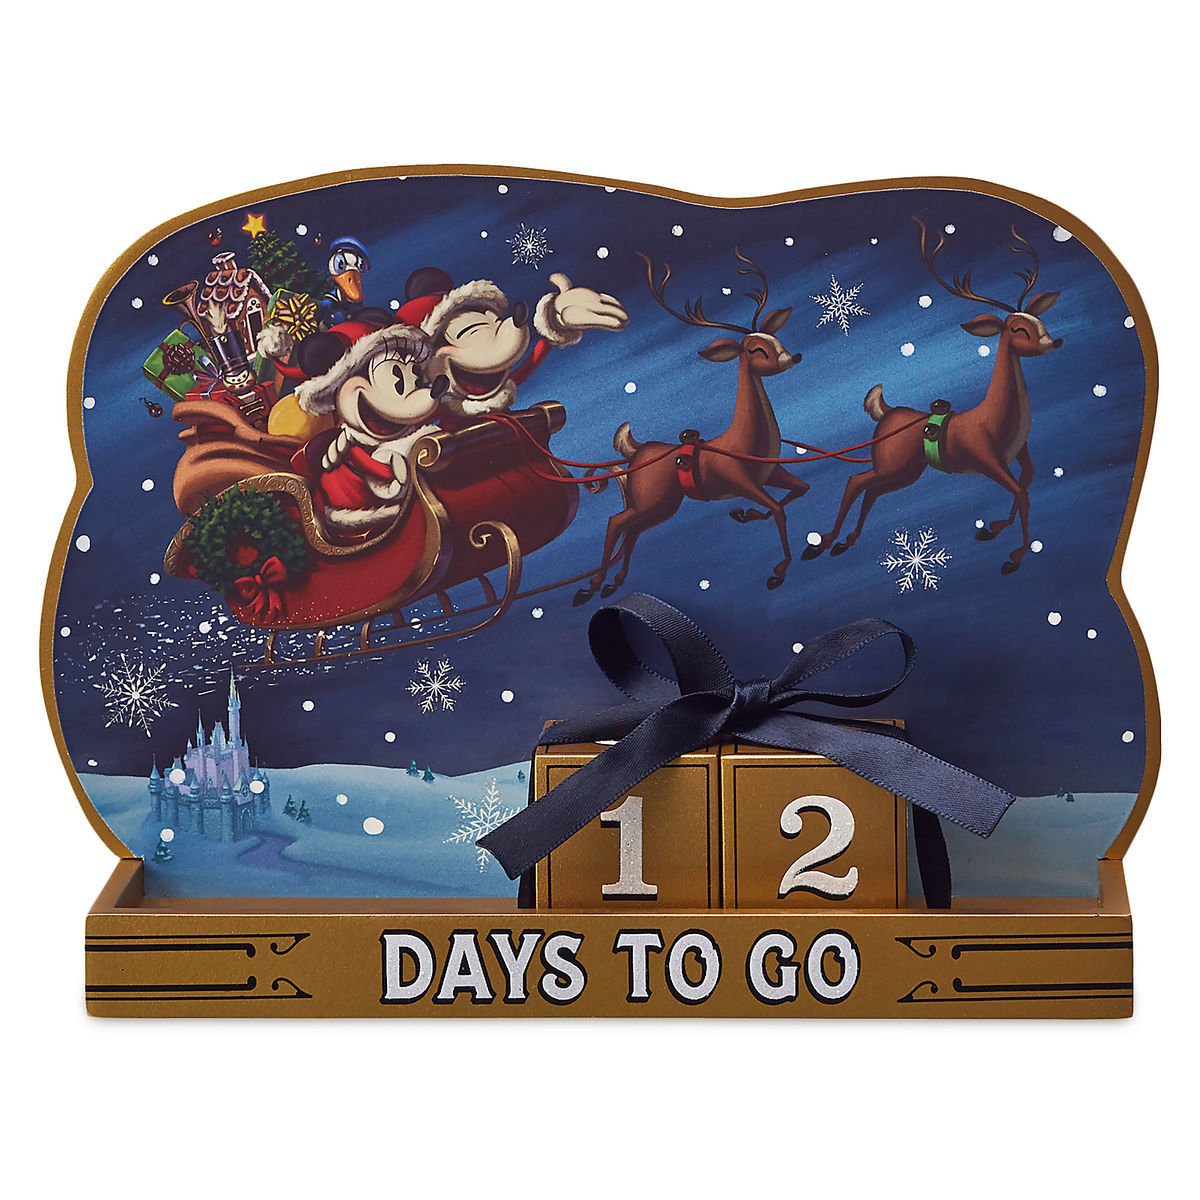 Disney Countdown Calendar - Santa Mickey and Minnie Mouse Holiday